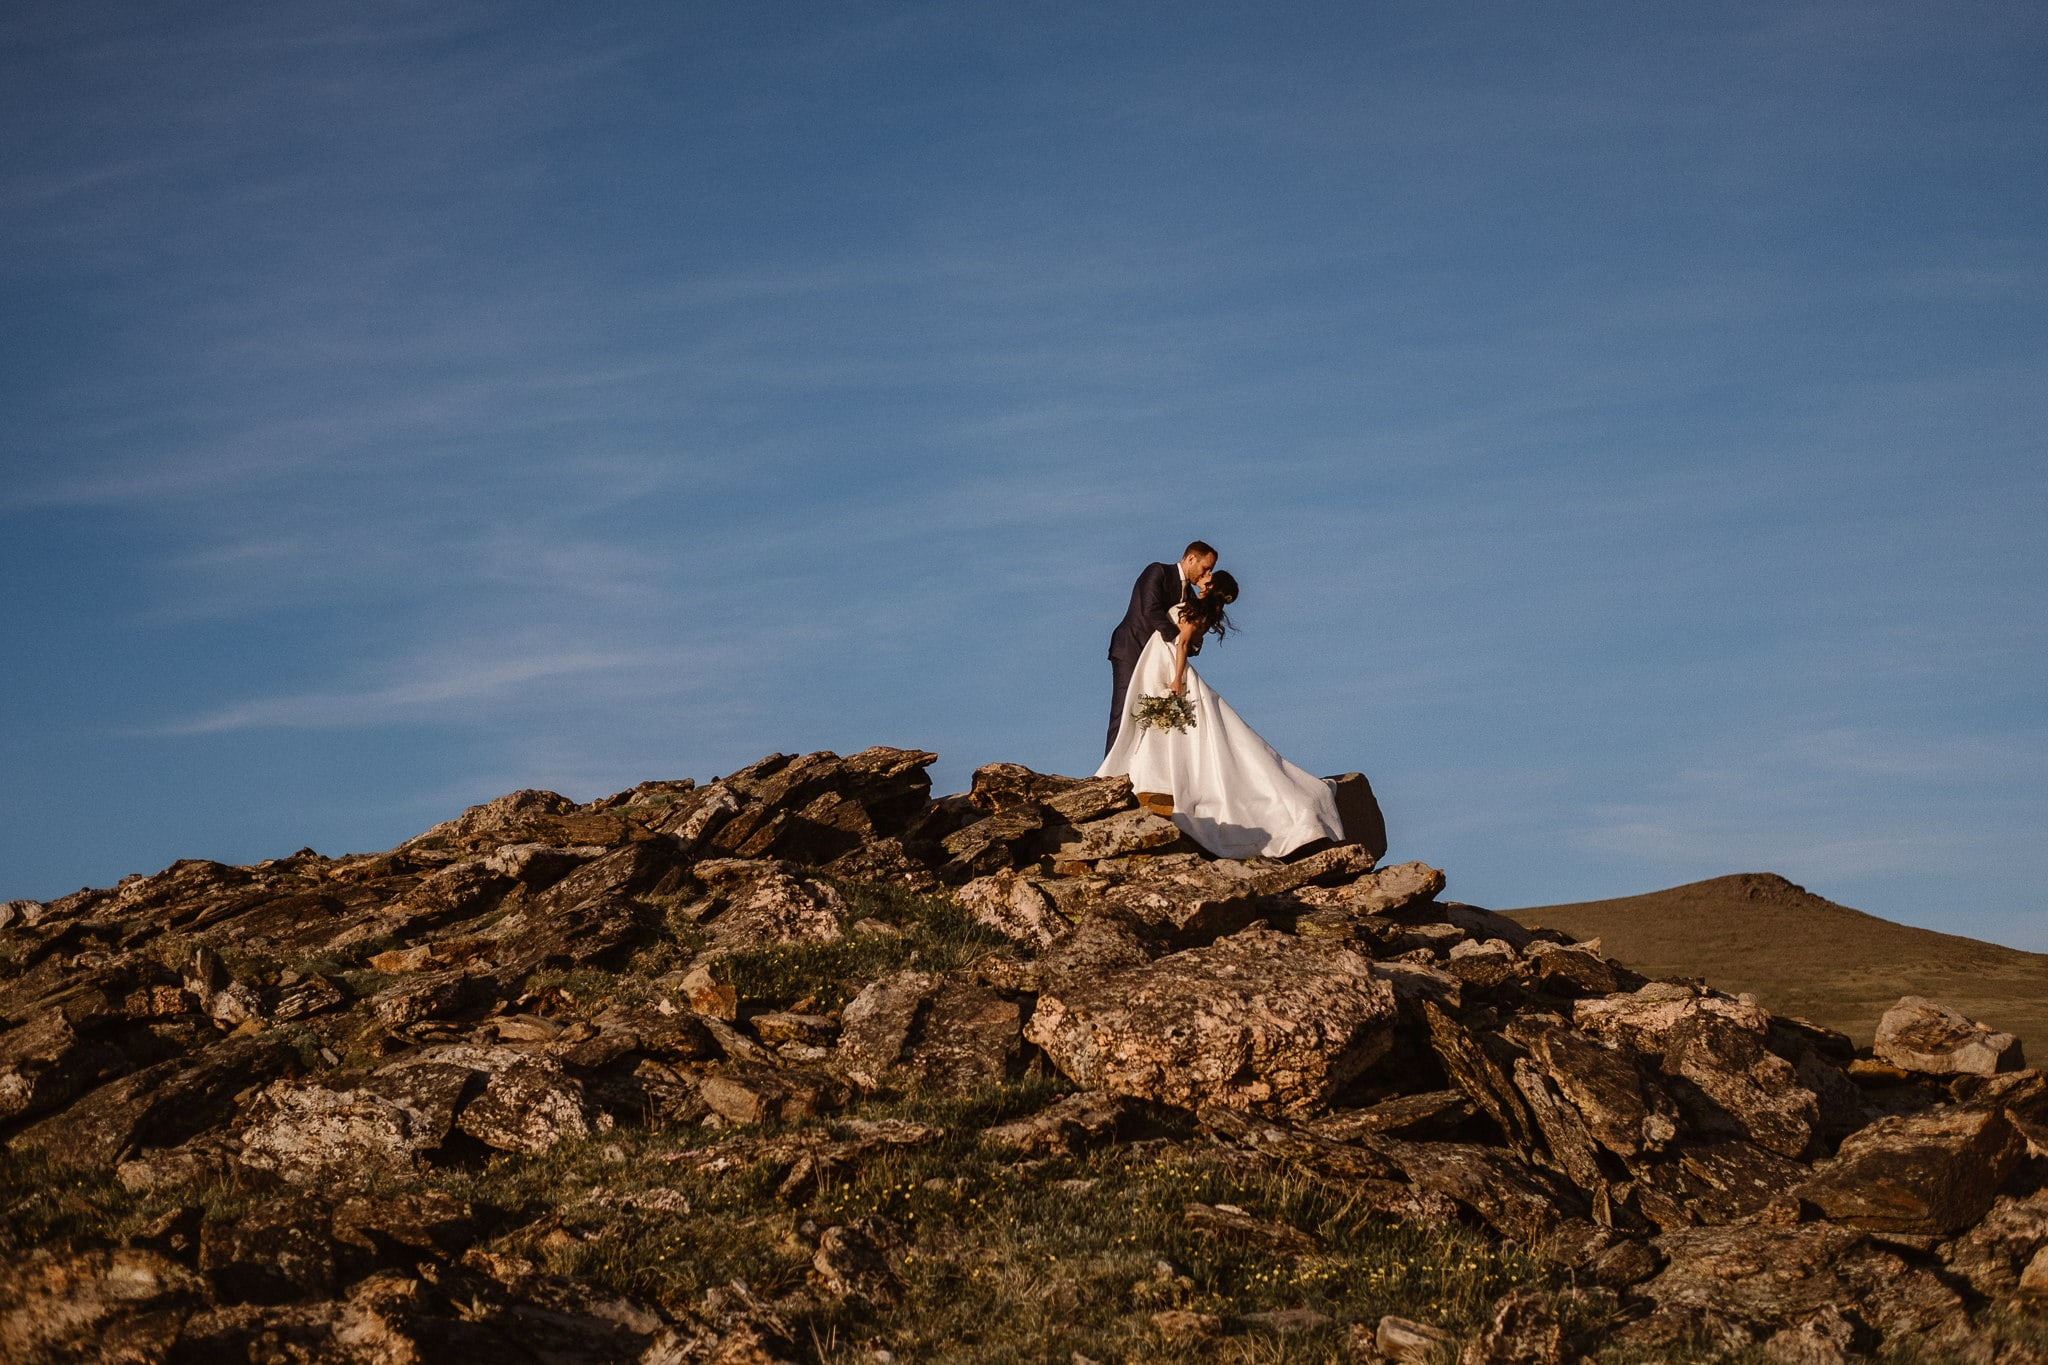 Trail Ridge Road Elopement Photographer, Colorado adventure wedding photography, mountain hiking elopement